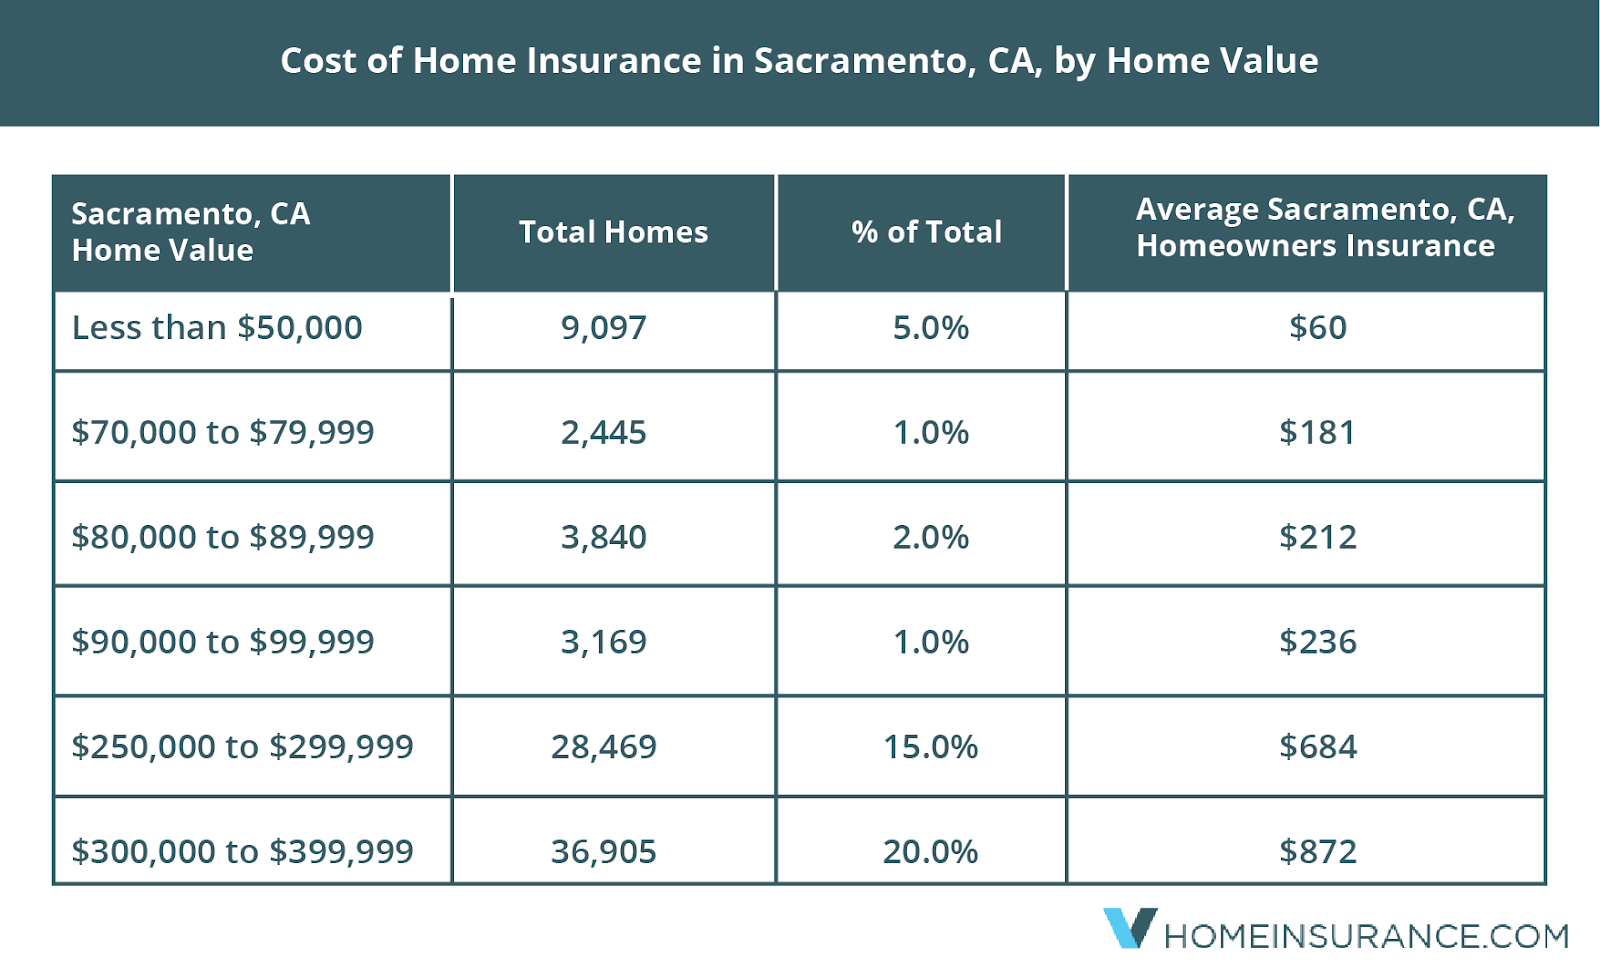 what_makes_home_insurance_expensive_in_sacramento_ca